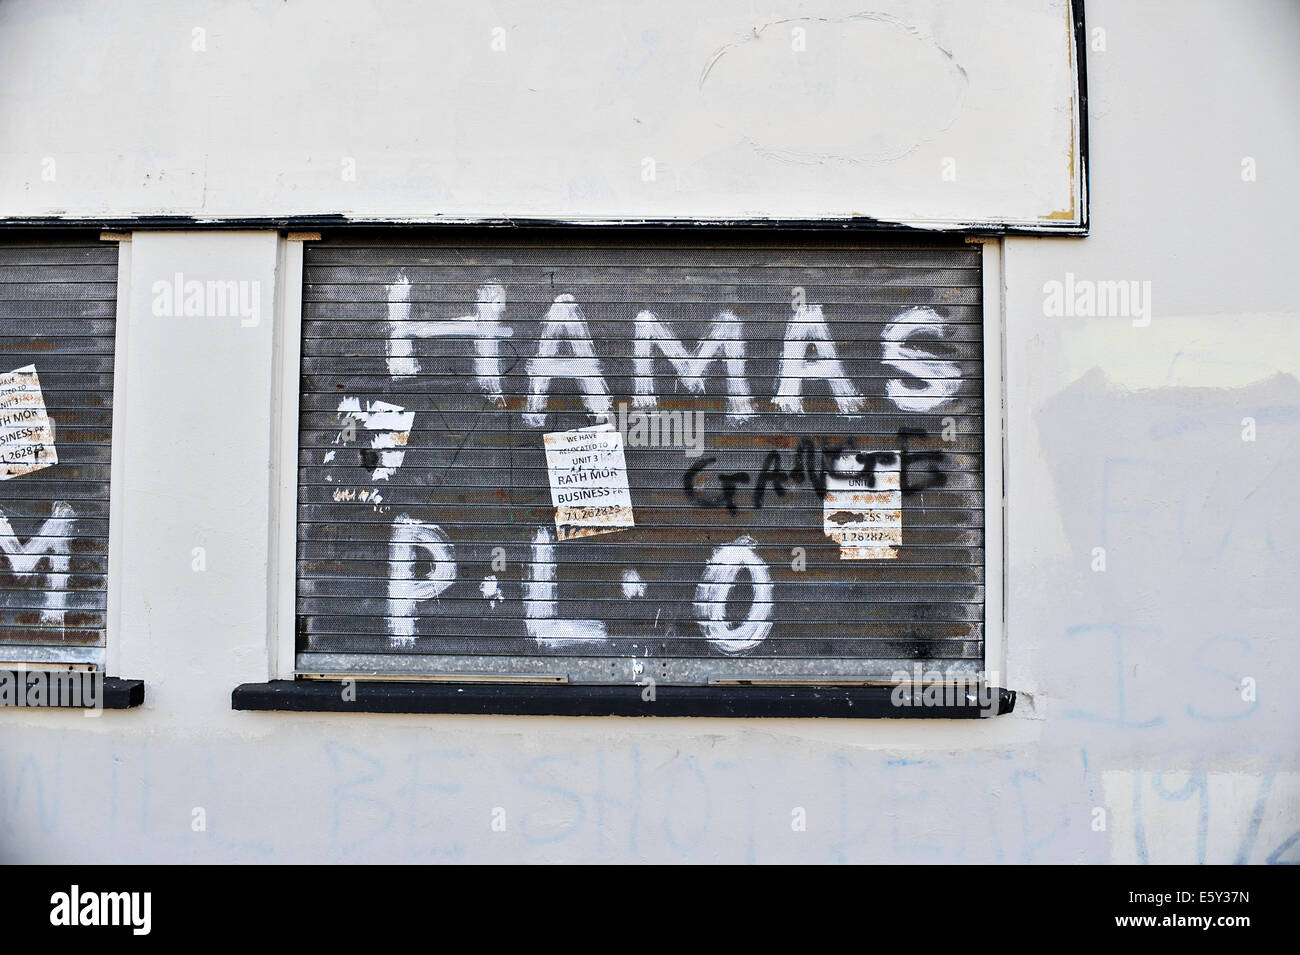 Graffiti supporting Hamas and PLO painted on shop shutters in Bogside, Derry, Londonderry, Northern Ireland. Stock Photo